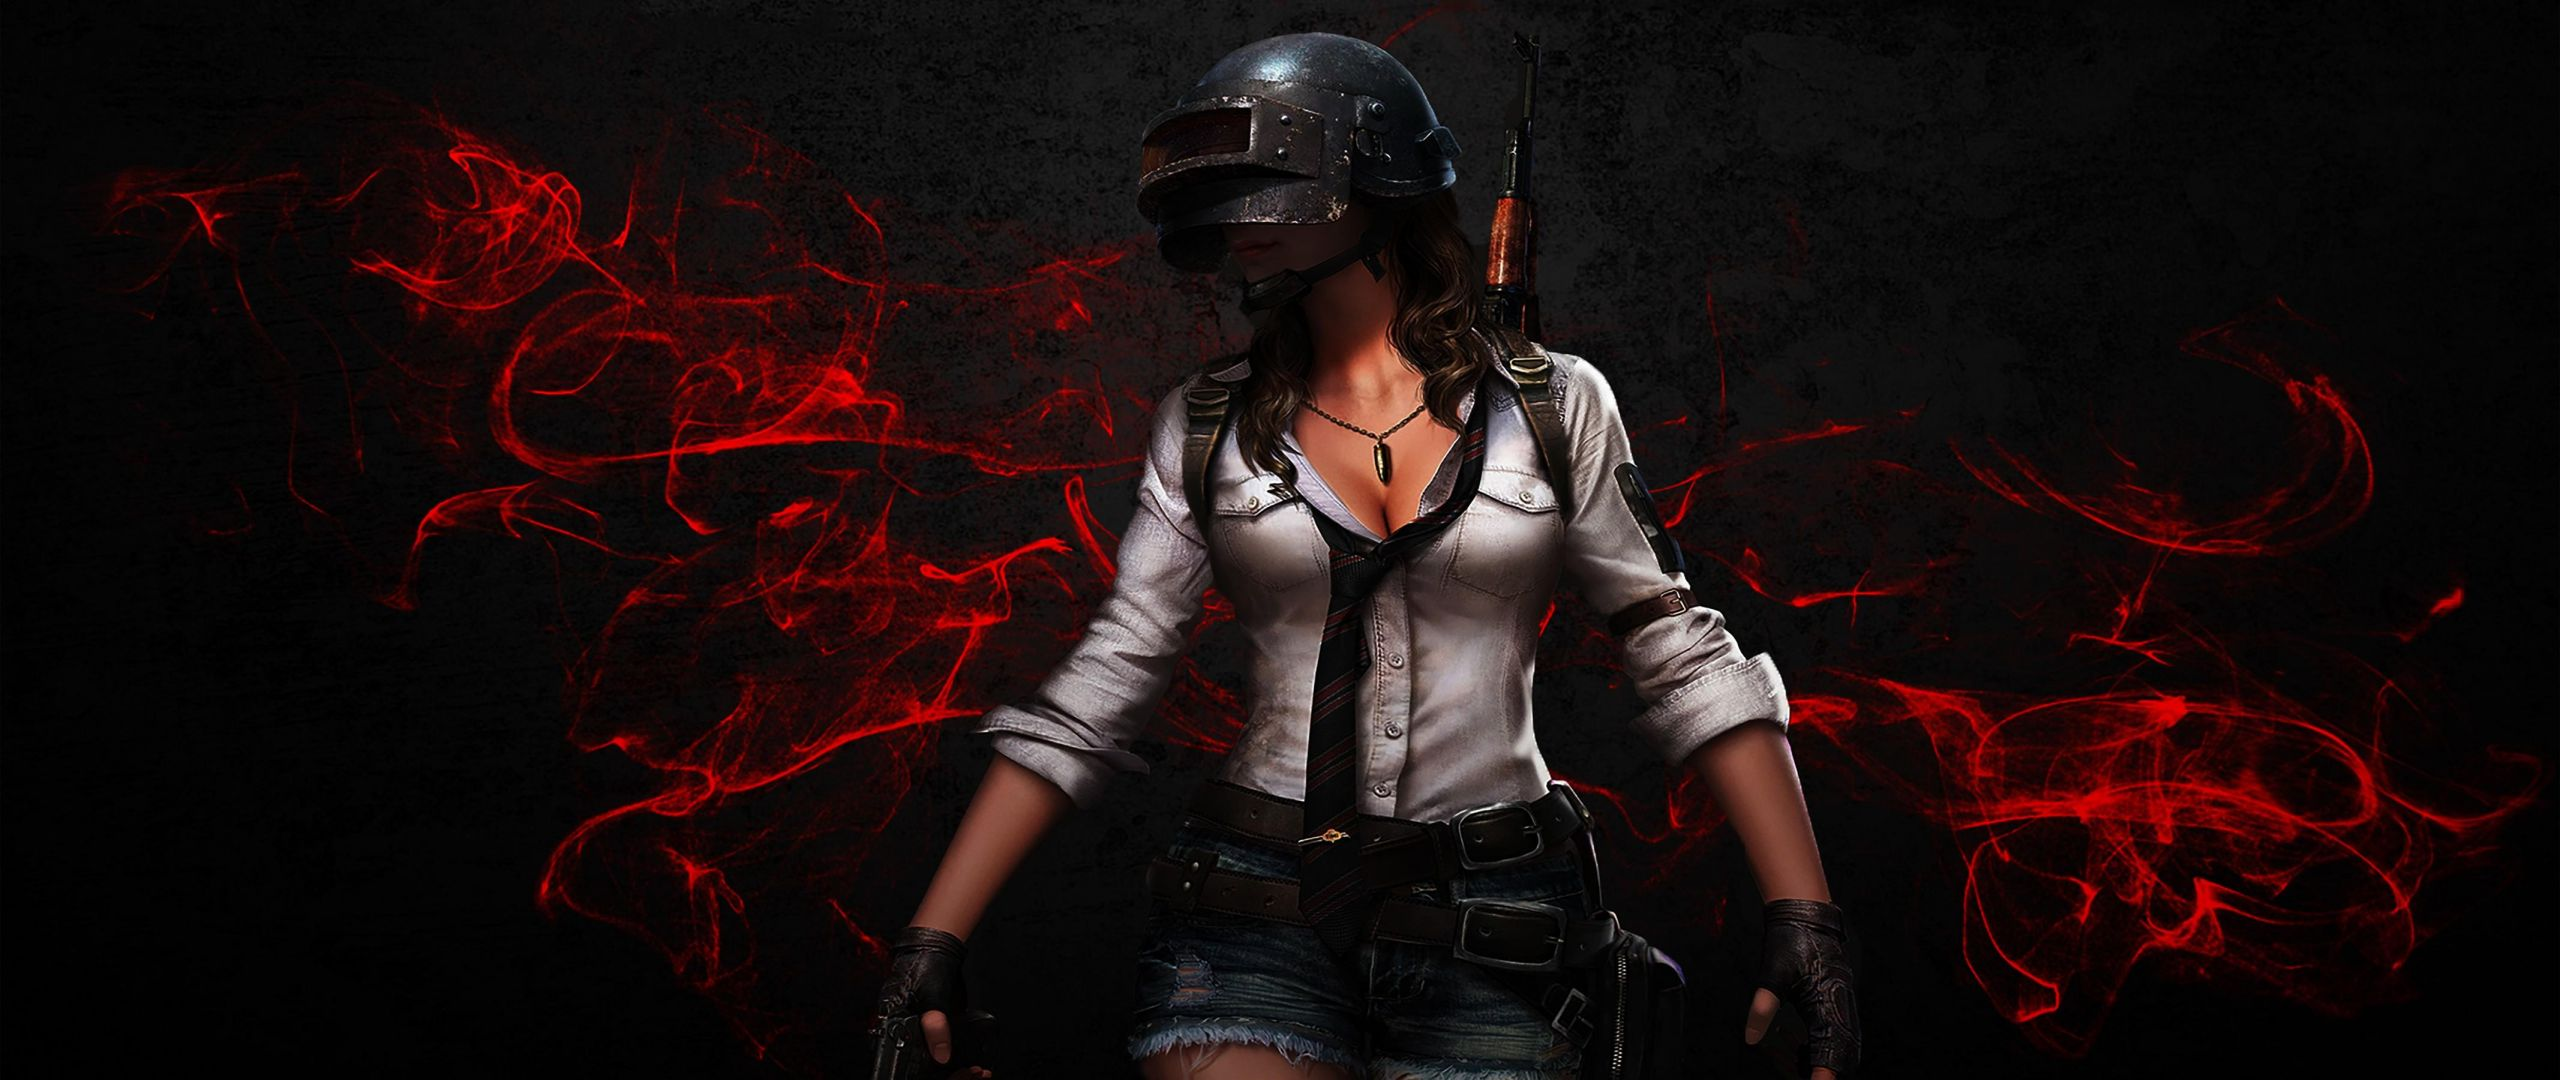 Pubg Girl 3d Desktop Hd Wallpaper - Pubg Wallpaper Full Hd (#450338) - HD  Wallpaper & Backgrounds Download